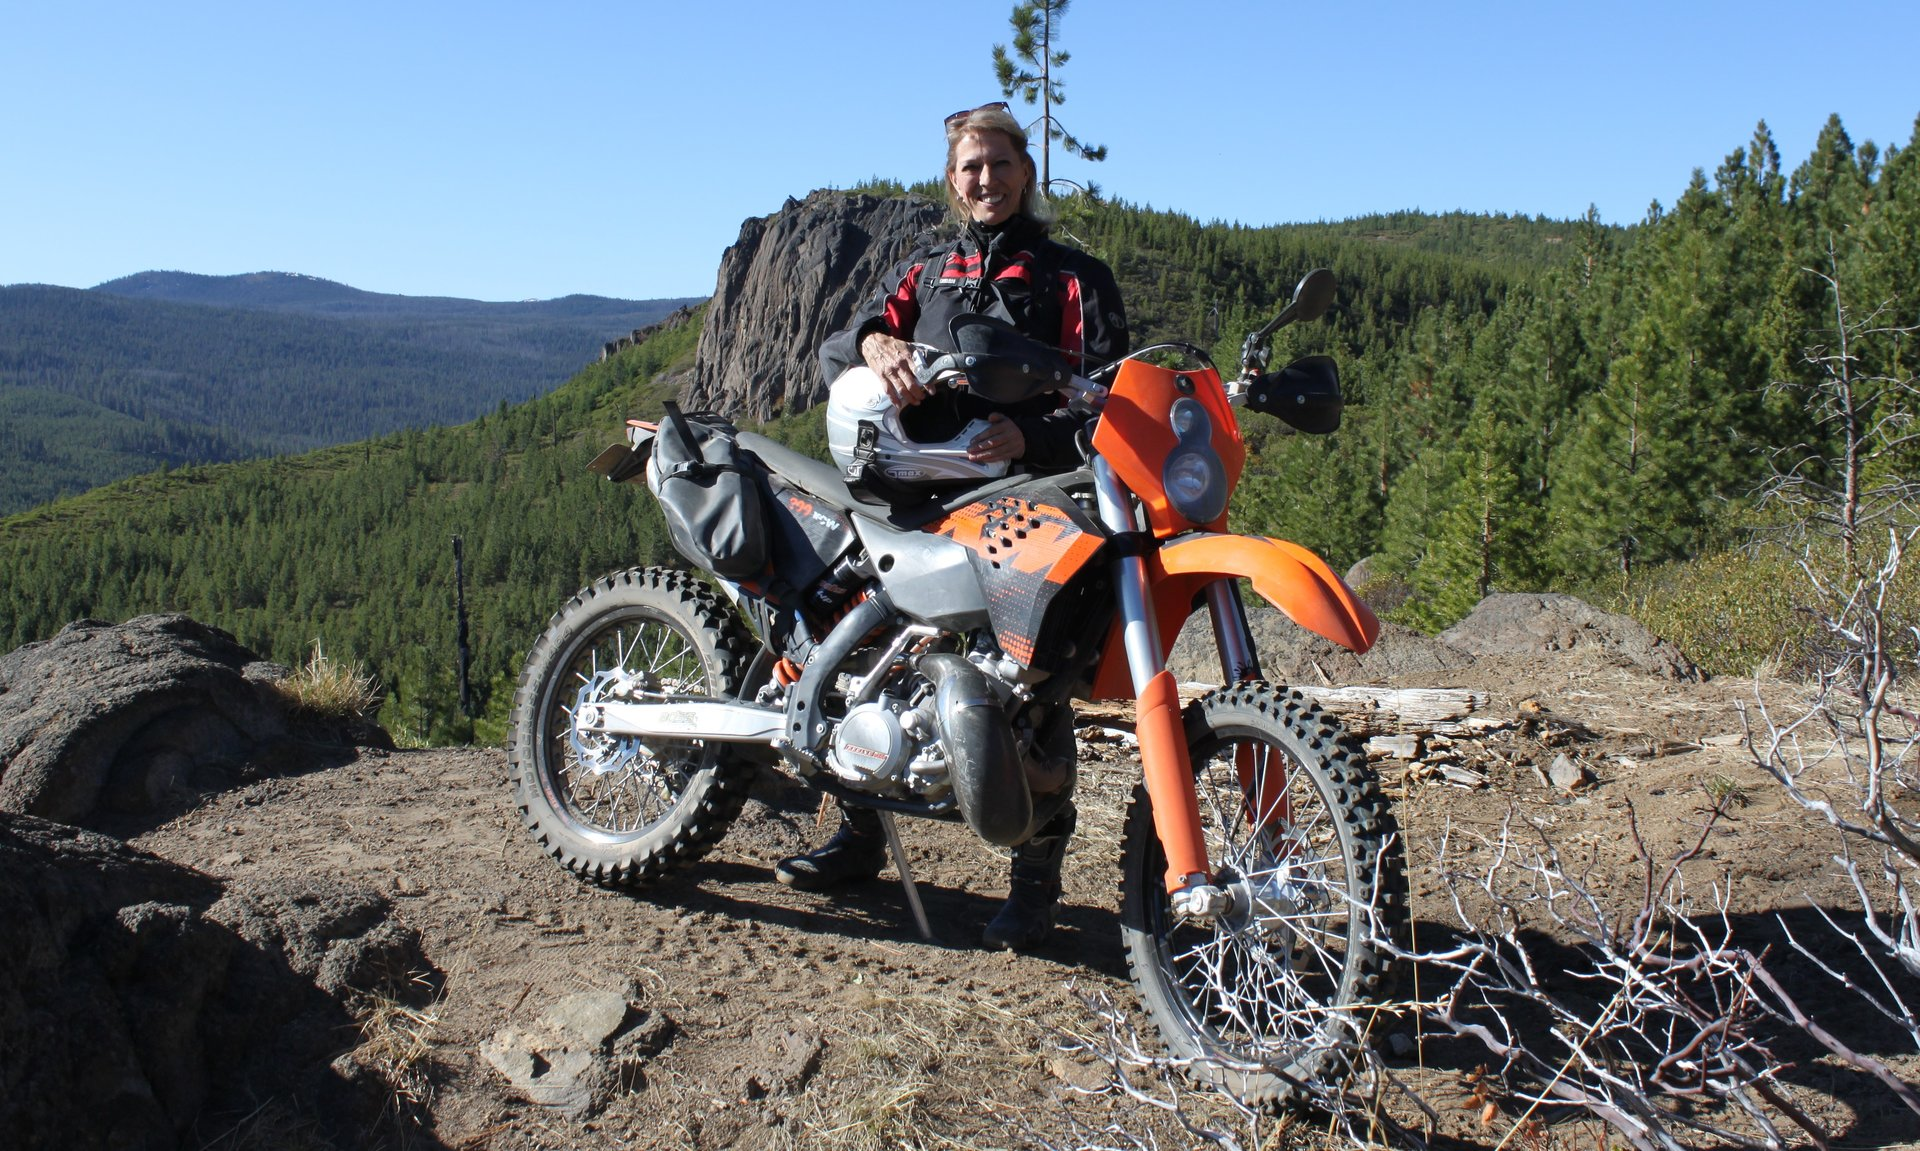 2013 KTM 200 XC-W   motorcycle review @ Top Speed